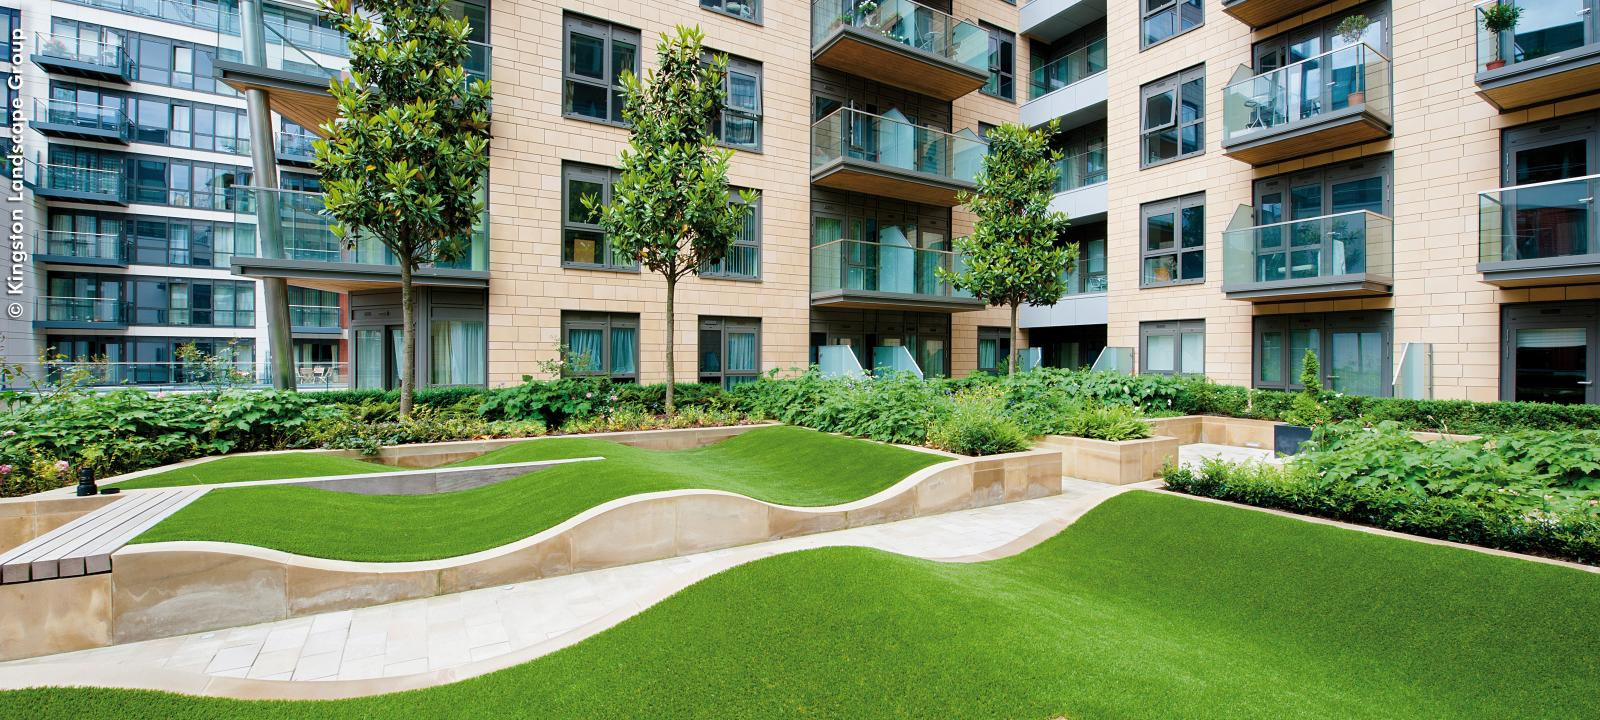 Dickens Yard London Zinco Green Roof Systems Uk